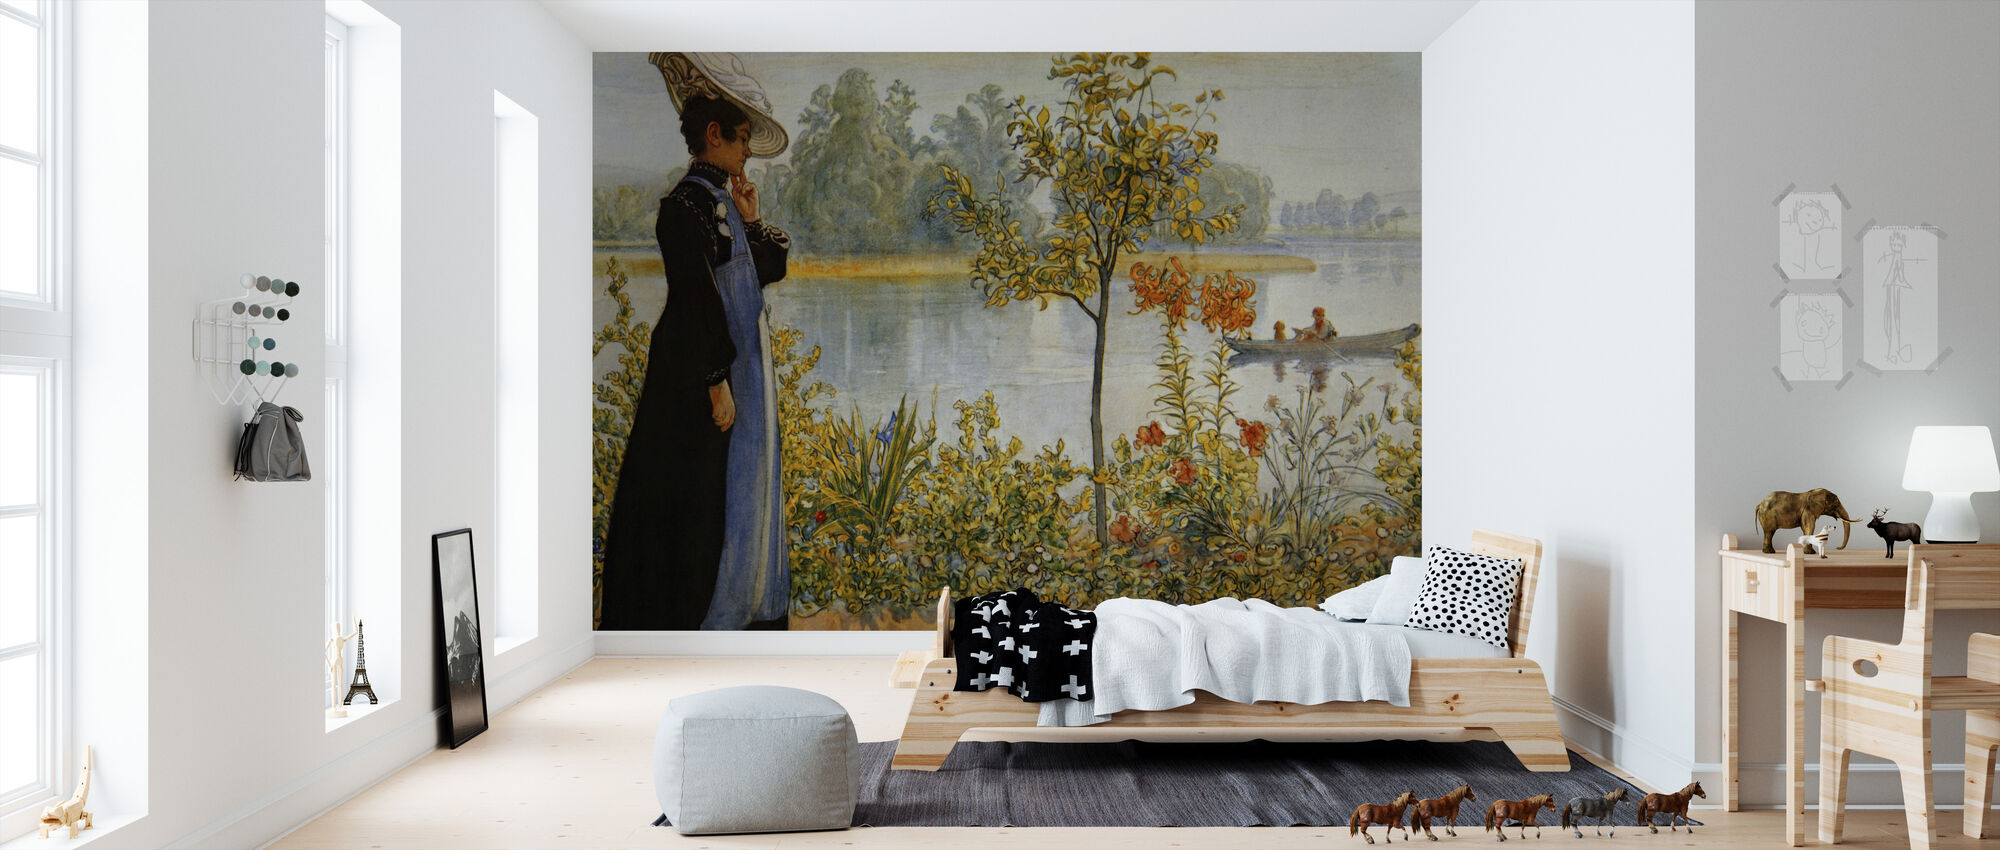 indian summer carl larsson wall murals online photowall. Black Bedroom Furniture Sets. Home Design Ideas